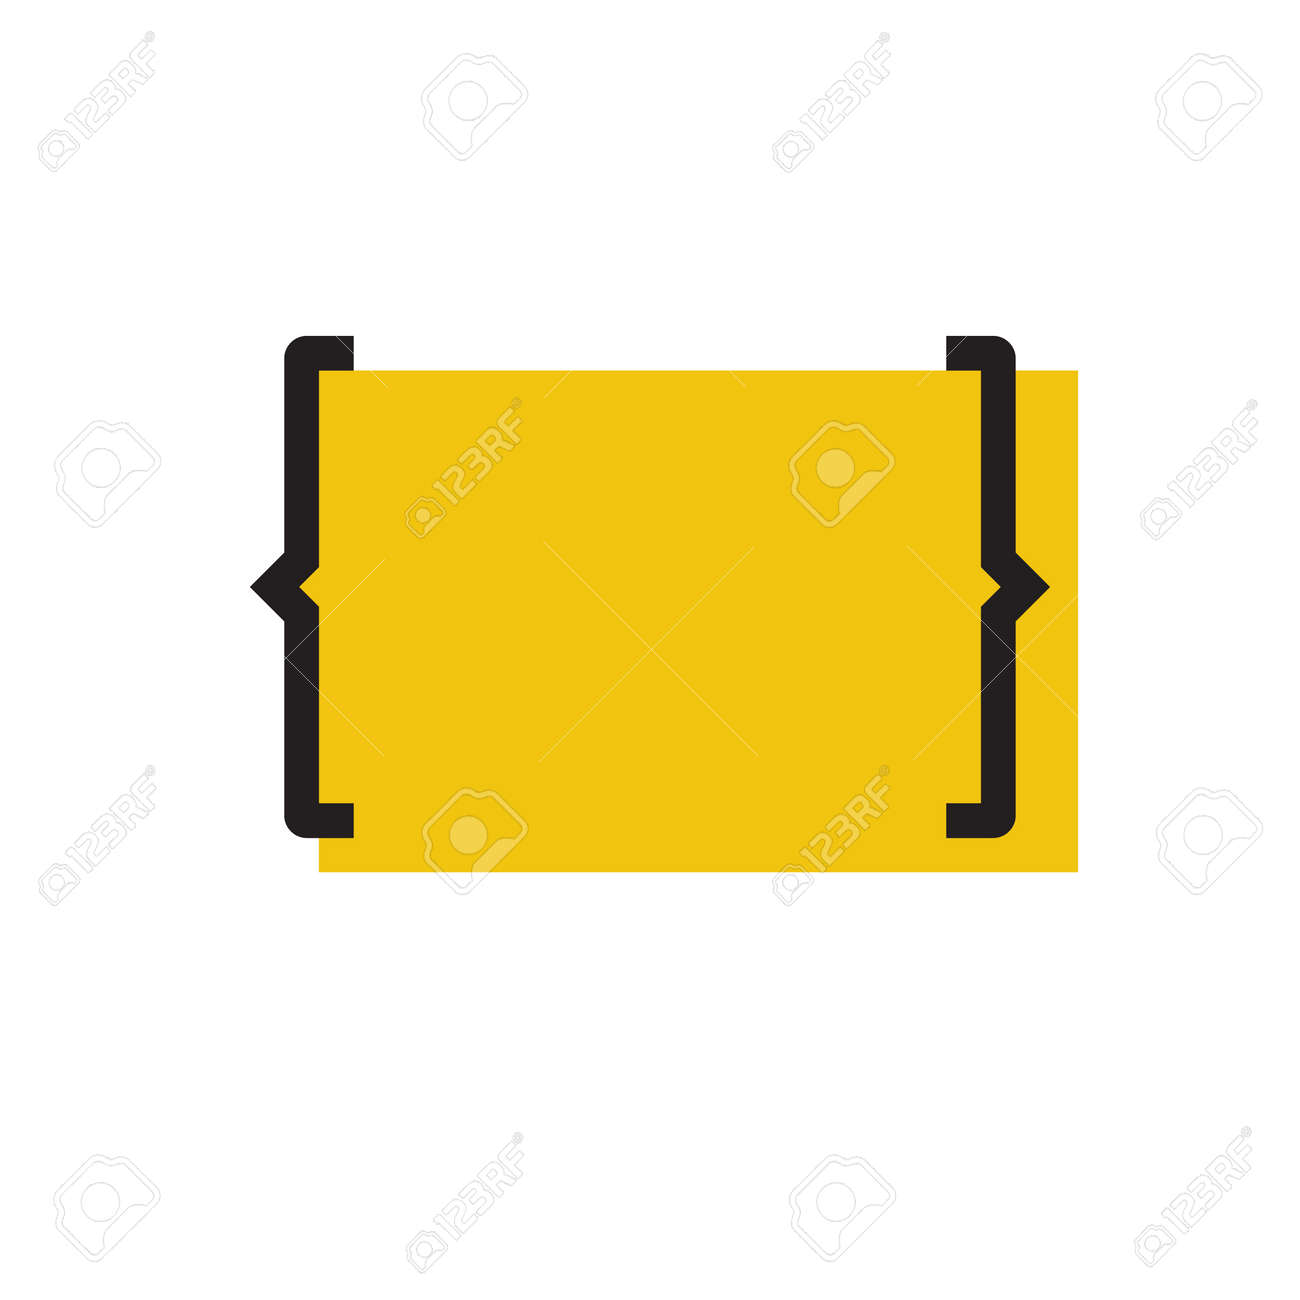 blank yellow template with bracket. royalty free cliparts, vectors